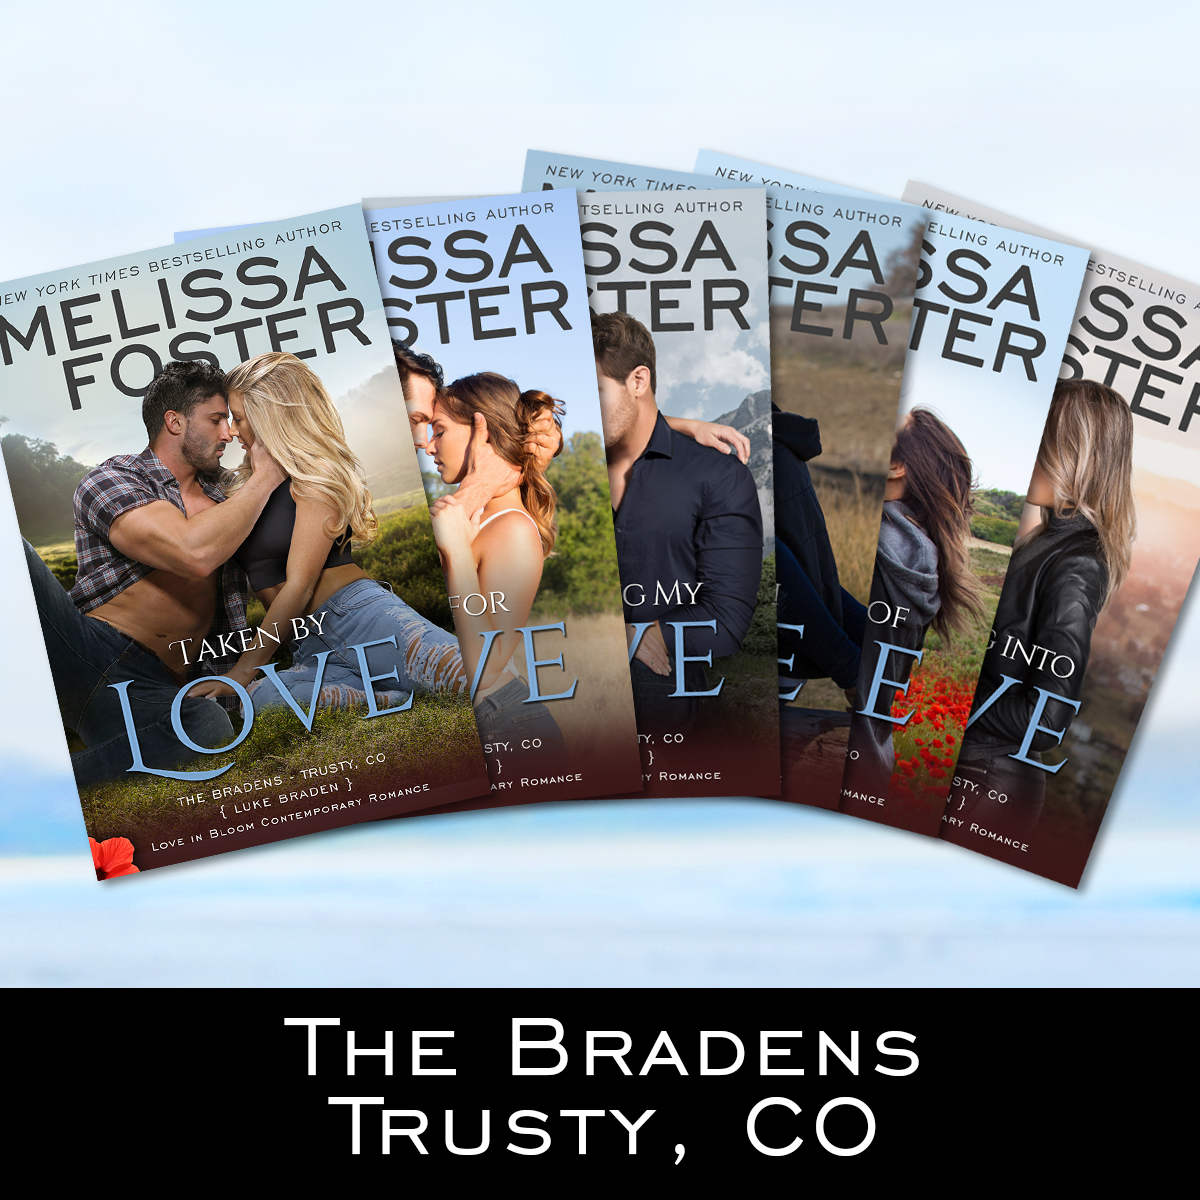 The Bradens at Trusty, Co, by Melissa Foster